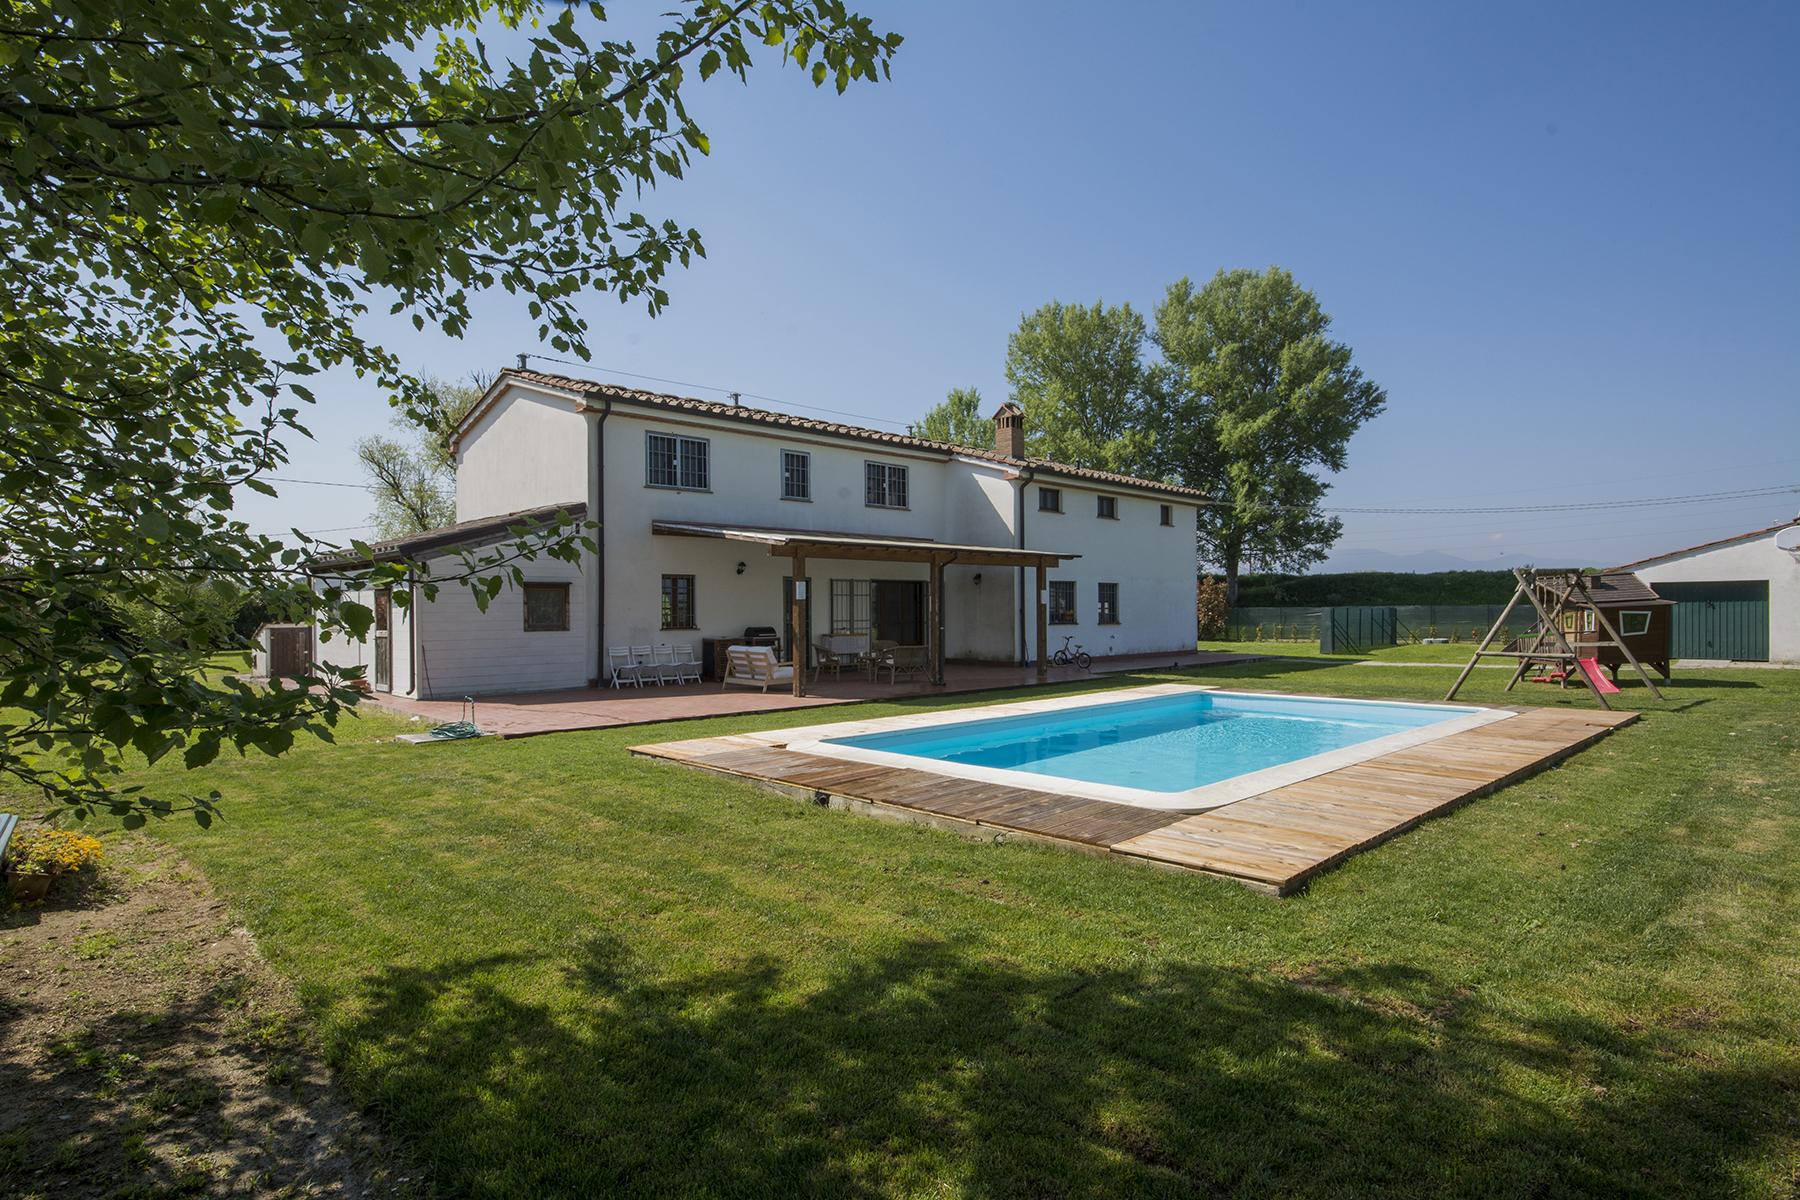 Maison unifamiliale pour l Vente à Independent farmhouse with swimming pool Autres Pistoia, Pistoia Italie